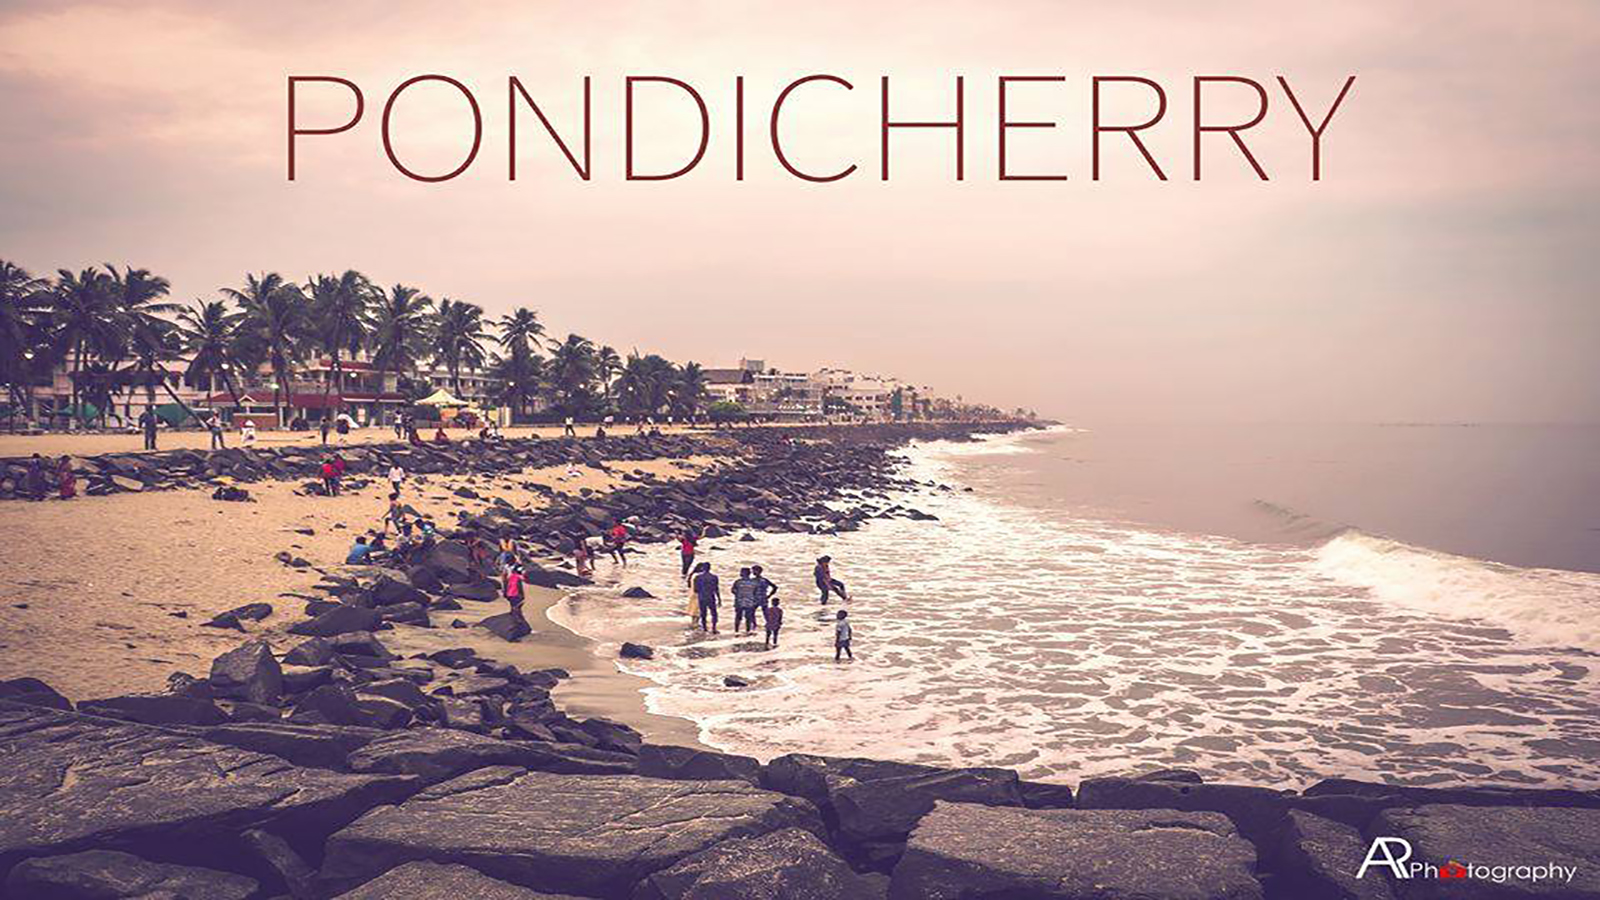 PONDICHERRY BACKPACKING THIS NEW YEAR